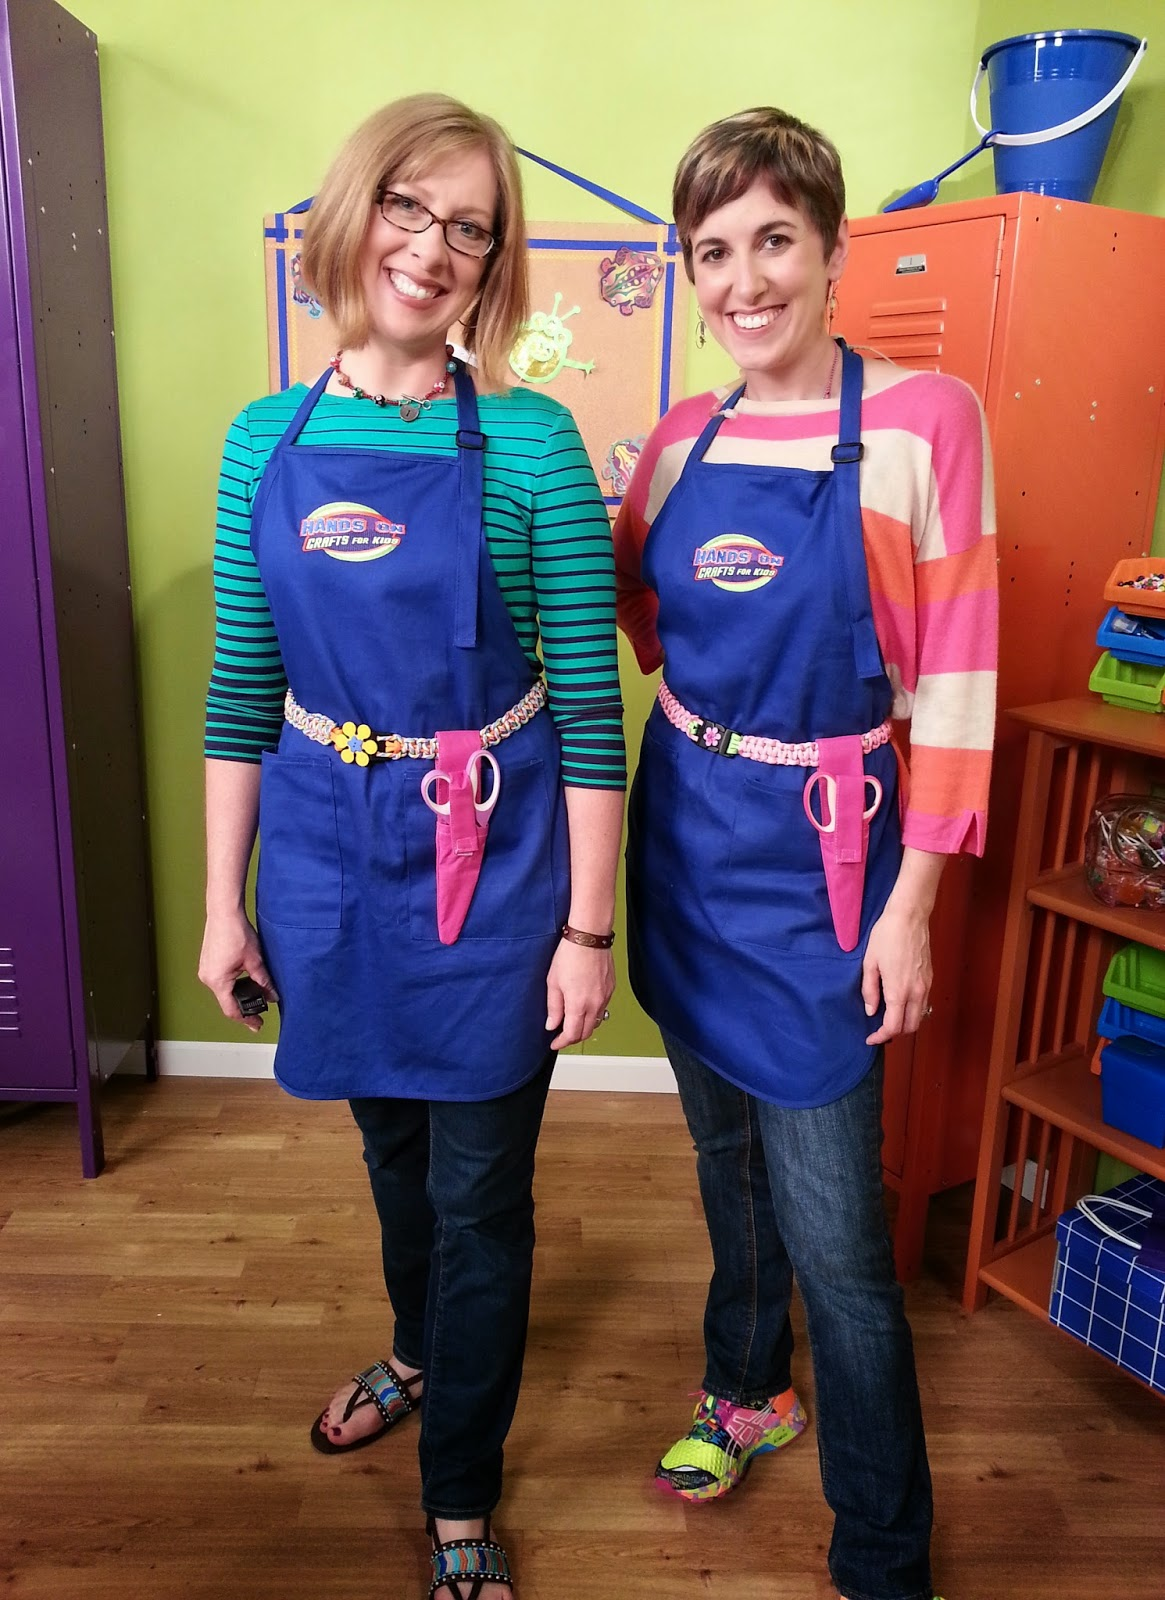 Katie and Candie Paracord belts - Photo courtesy of Hands On Crafts for Kids